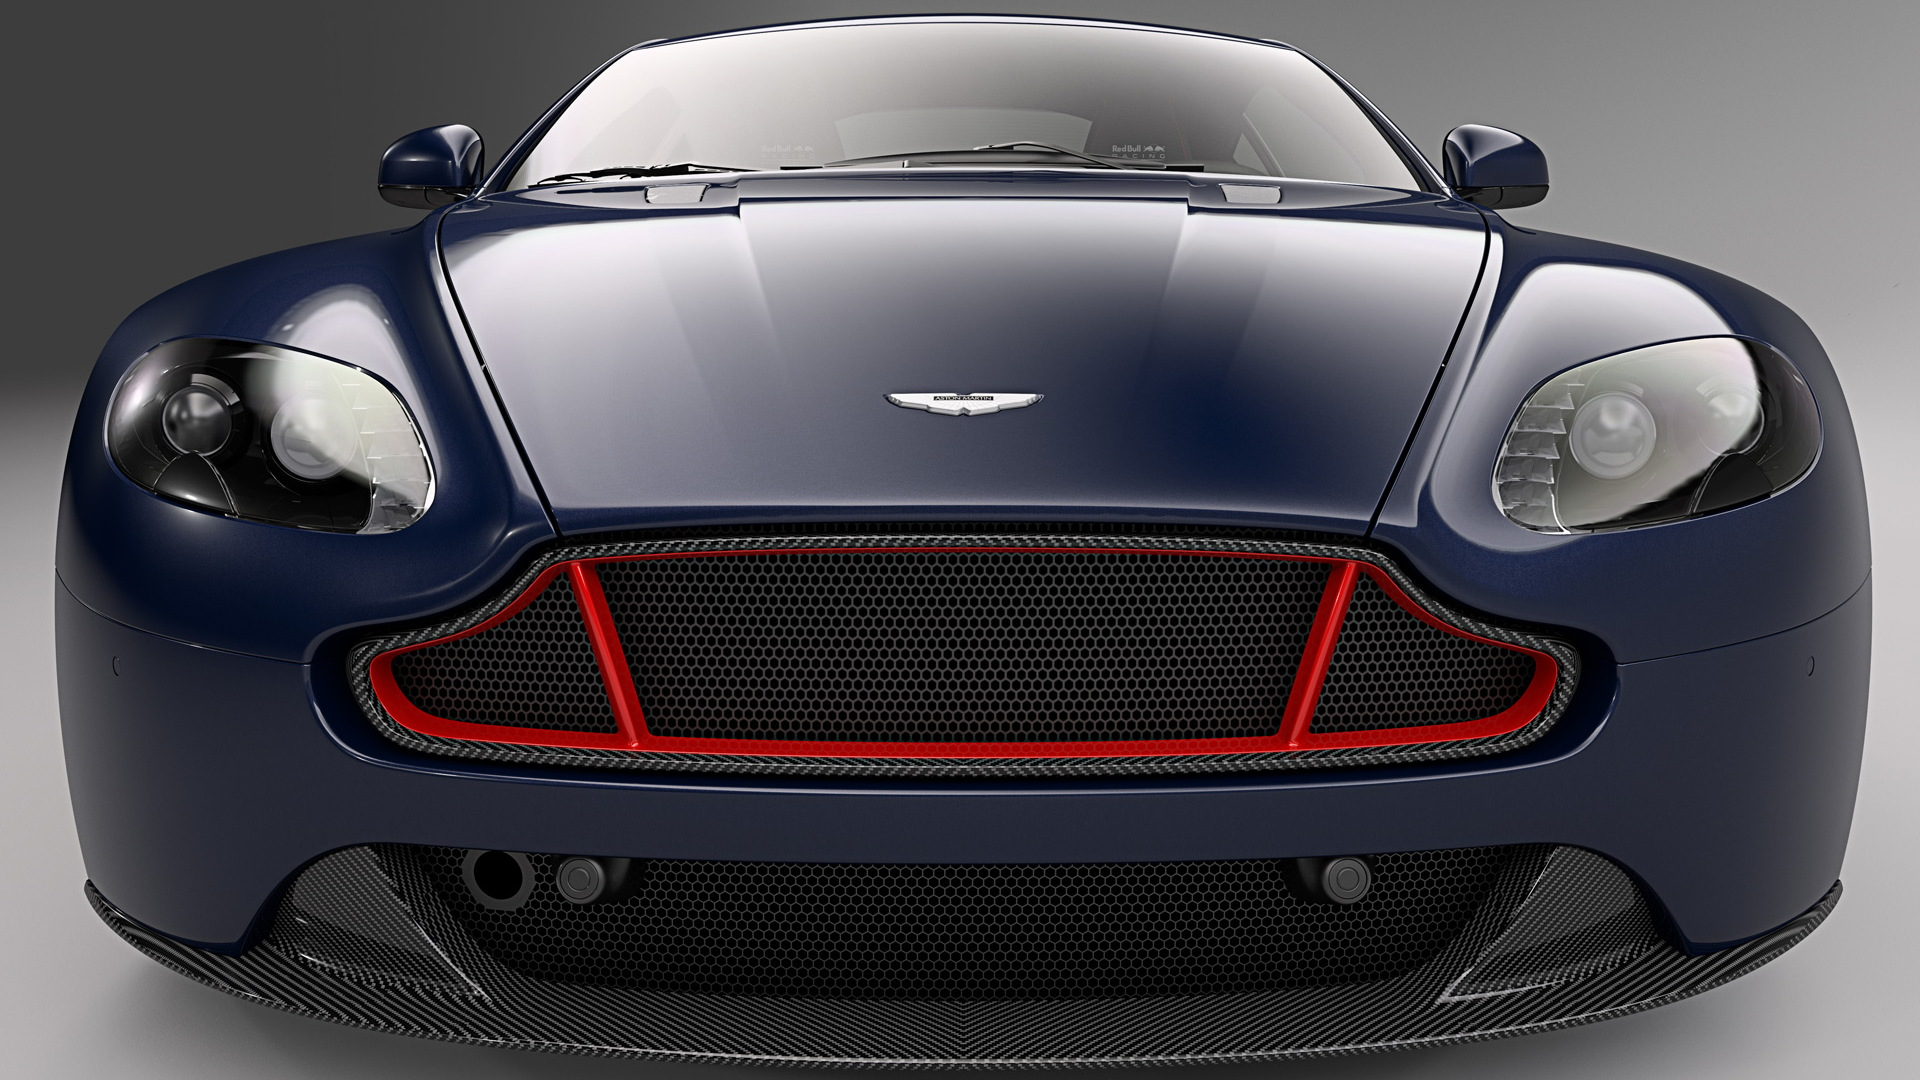 2017 Aston Martin Vantage Red Bull Racing Edition